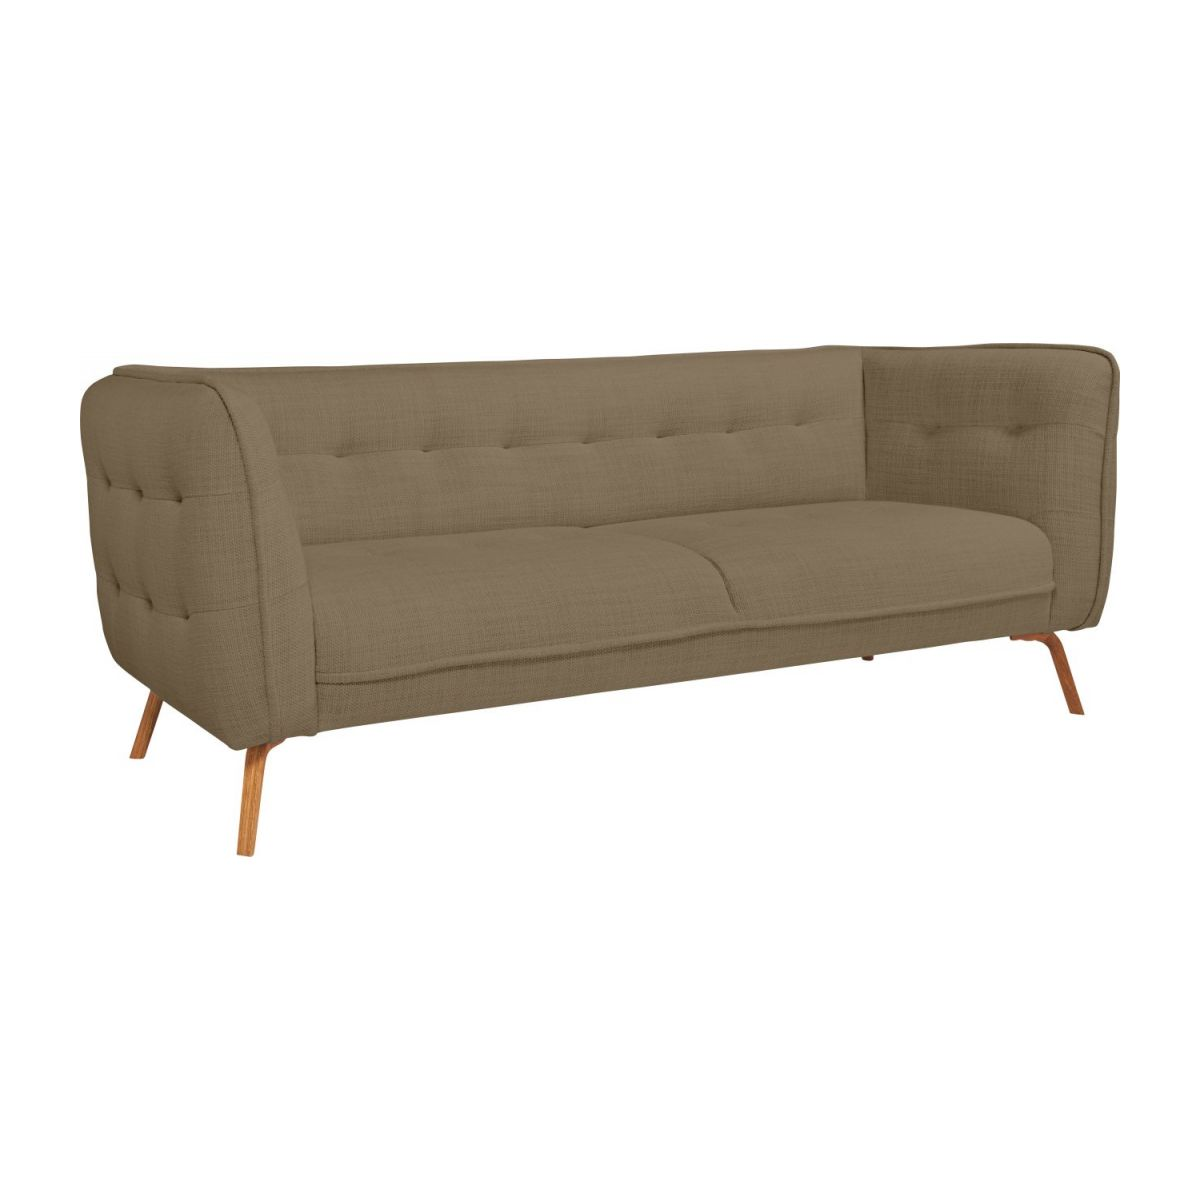 3 seater sofa in Fasoli fabric, jatoba brown and oak legs n°1